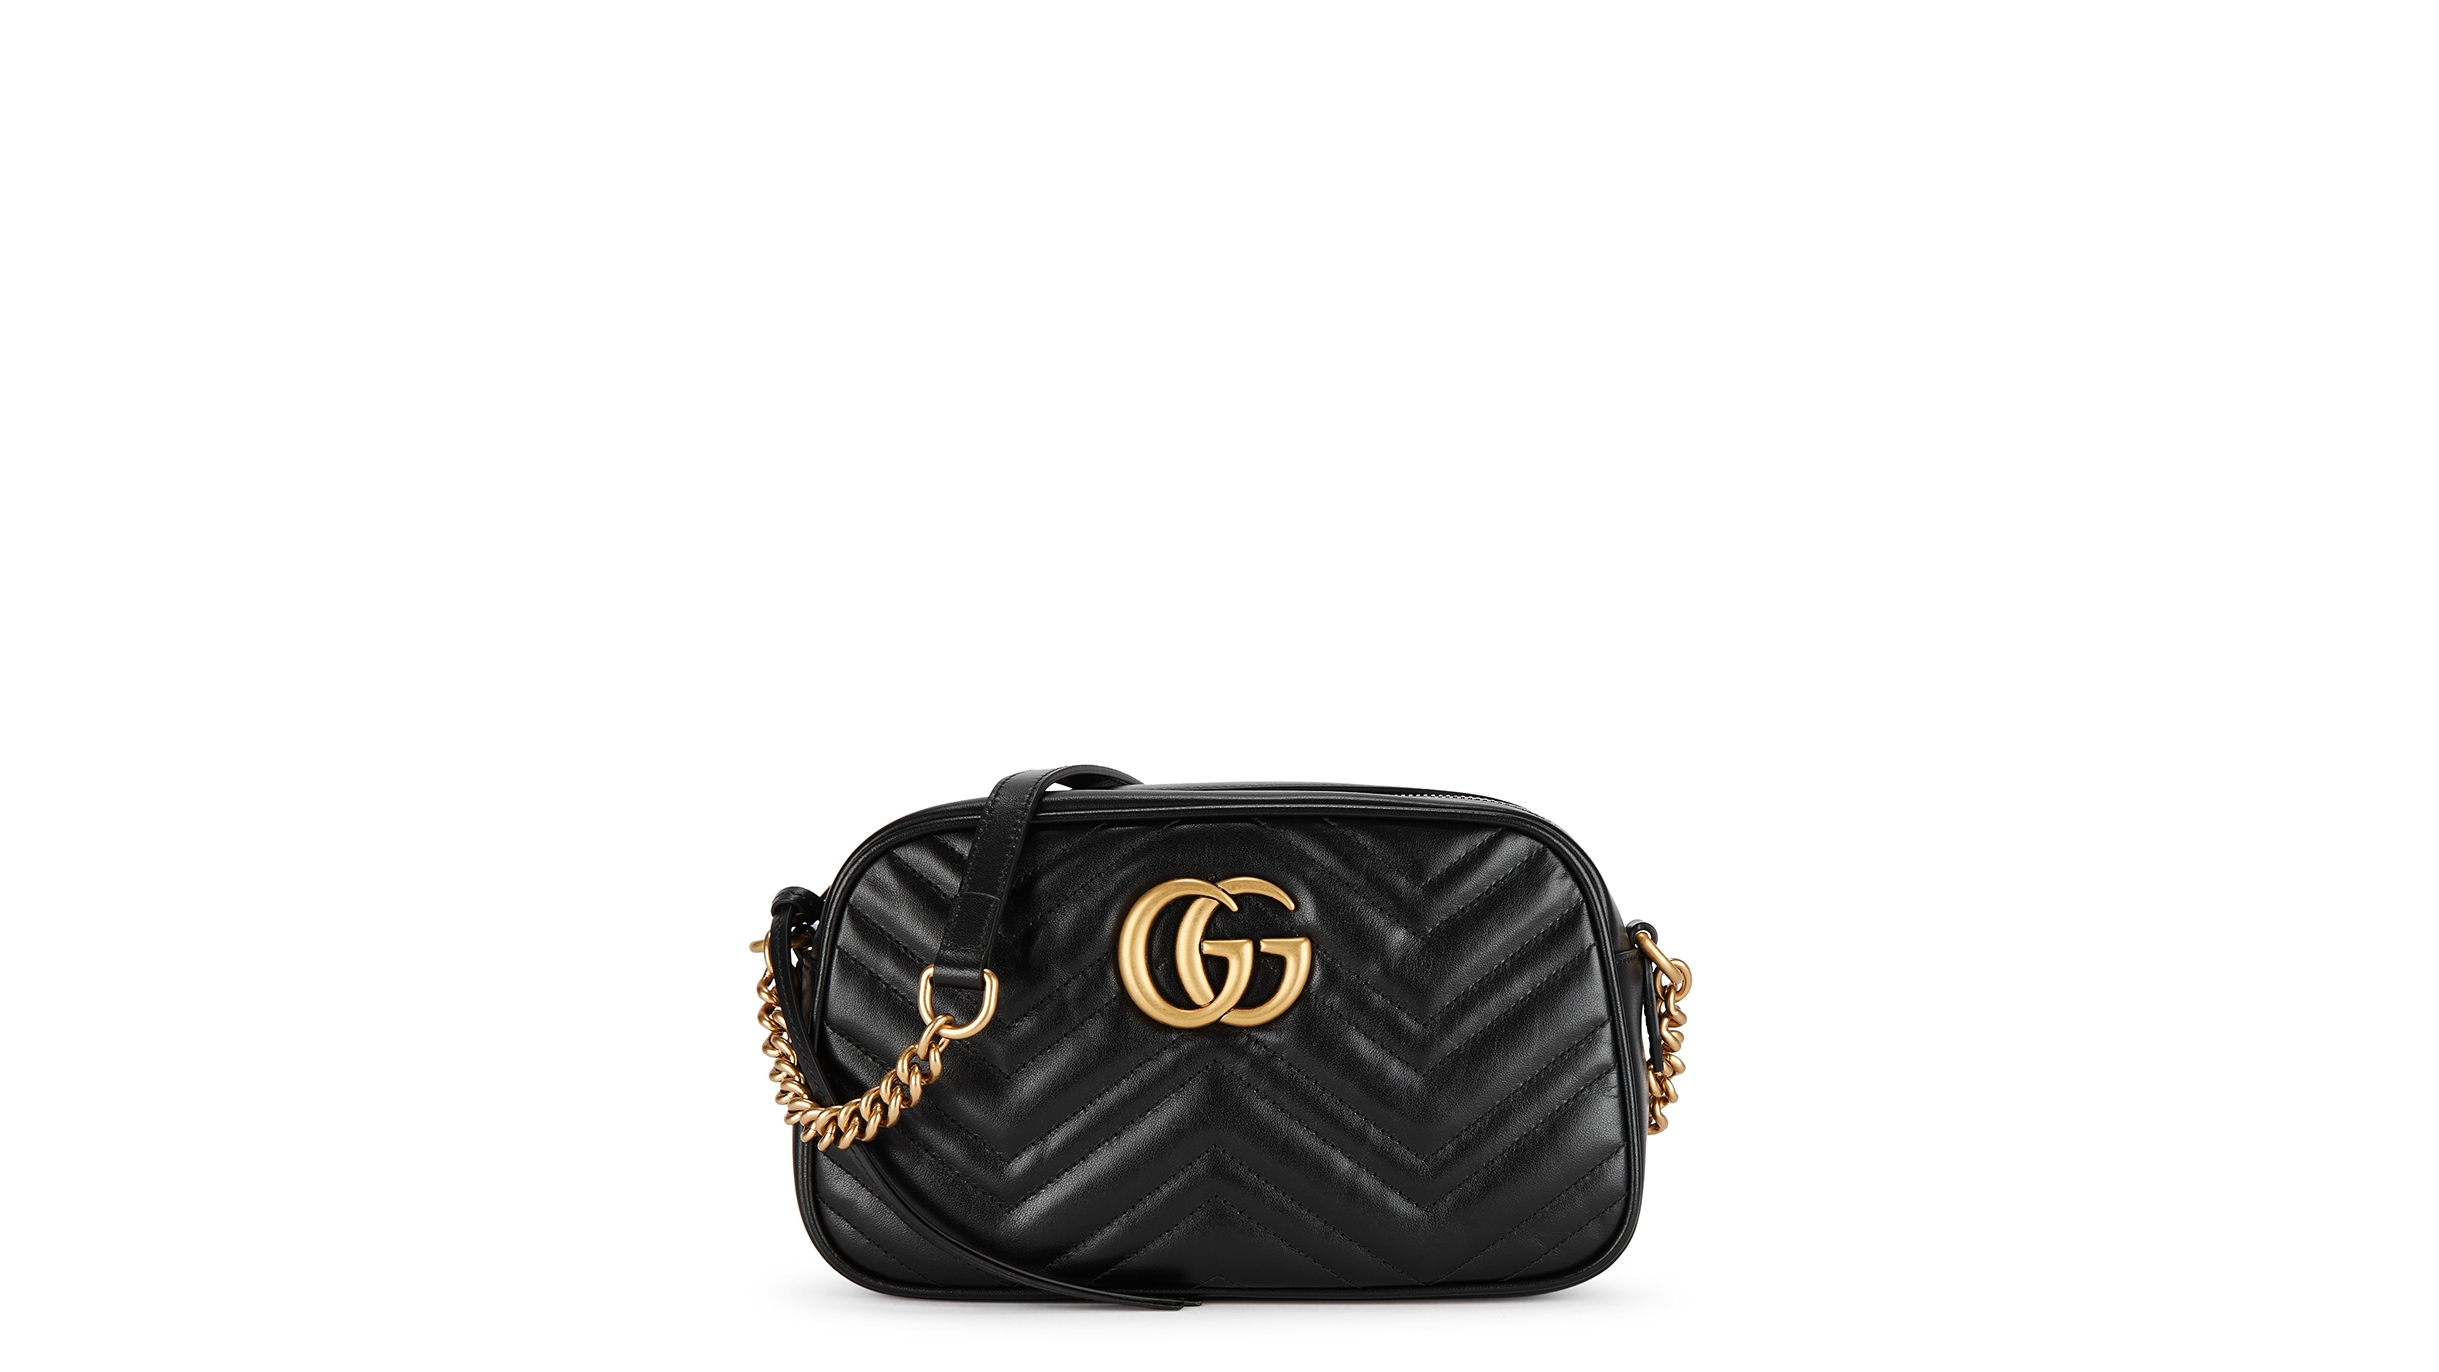 f6cd94834 Gucci GG Marmont small leather cross-body bag - Harvey Nichols